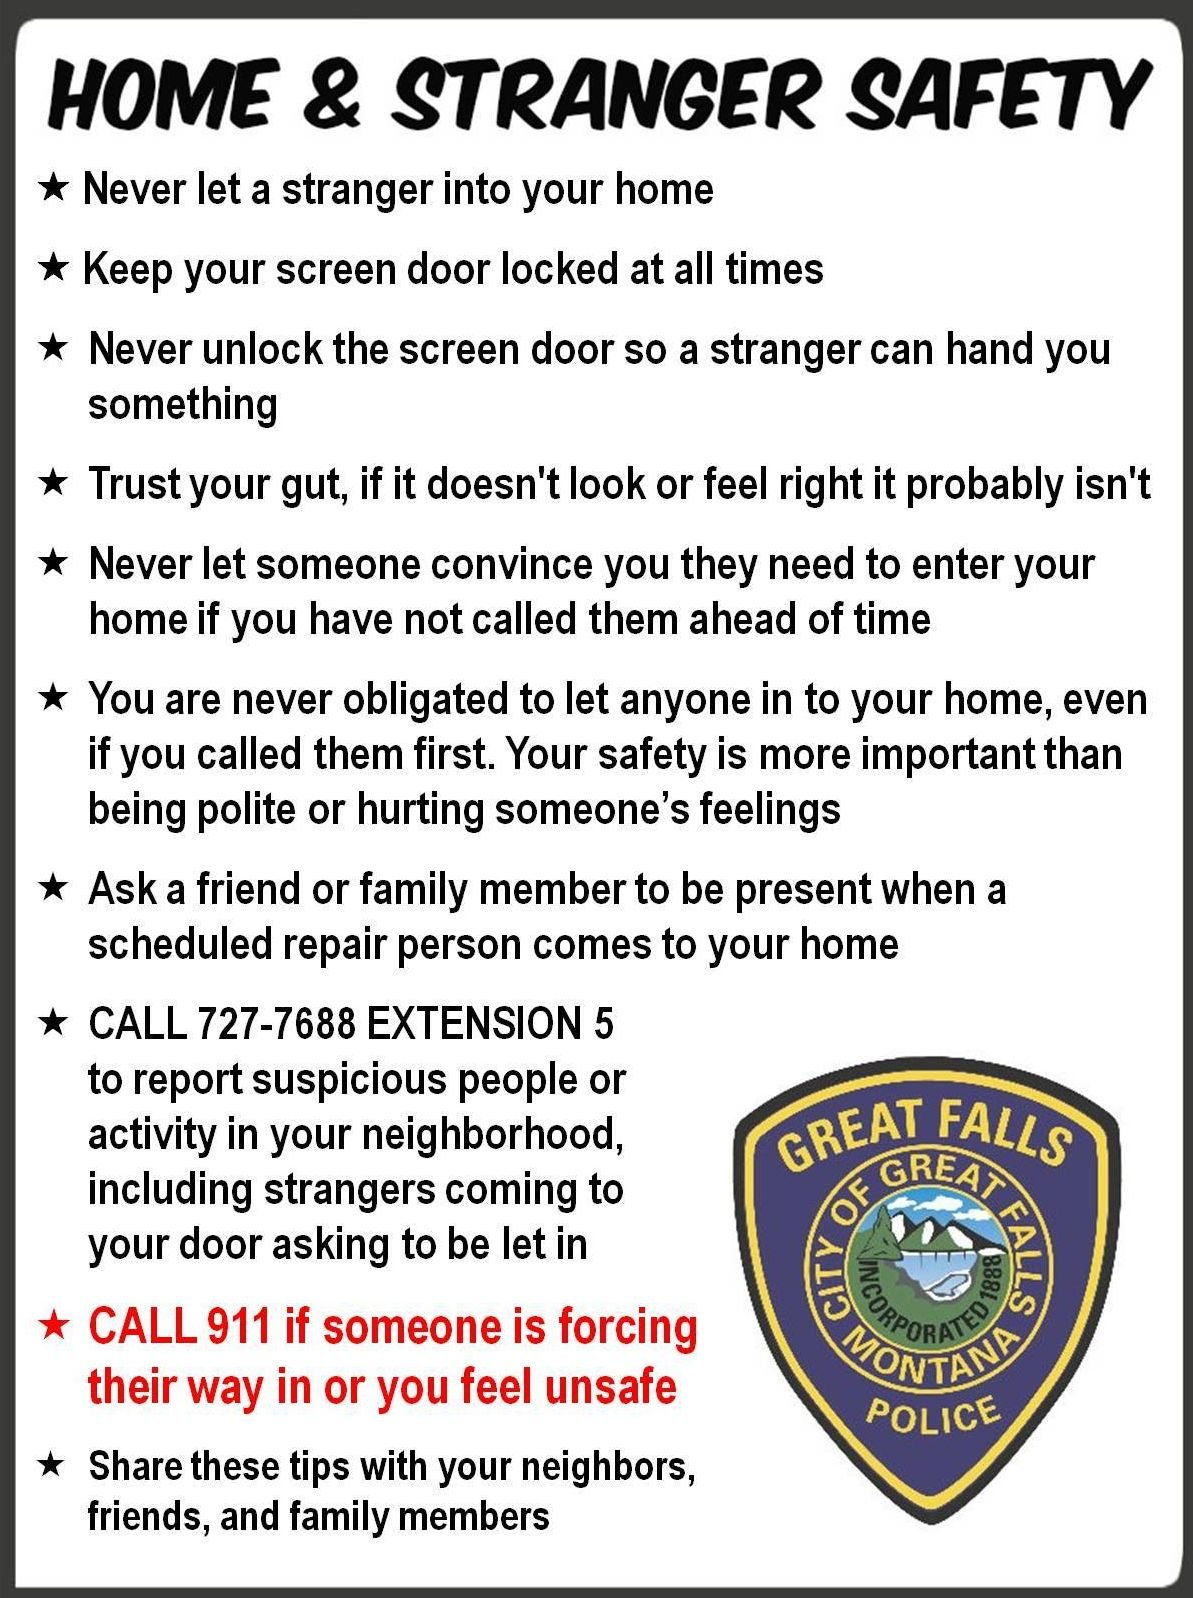 GFPD warns of thief posing as utility worker to gain access to h ...